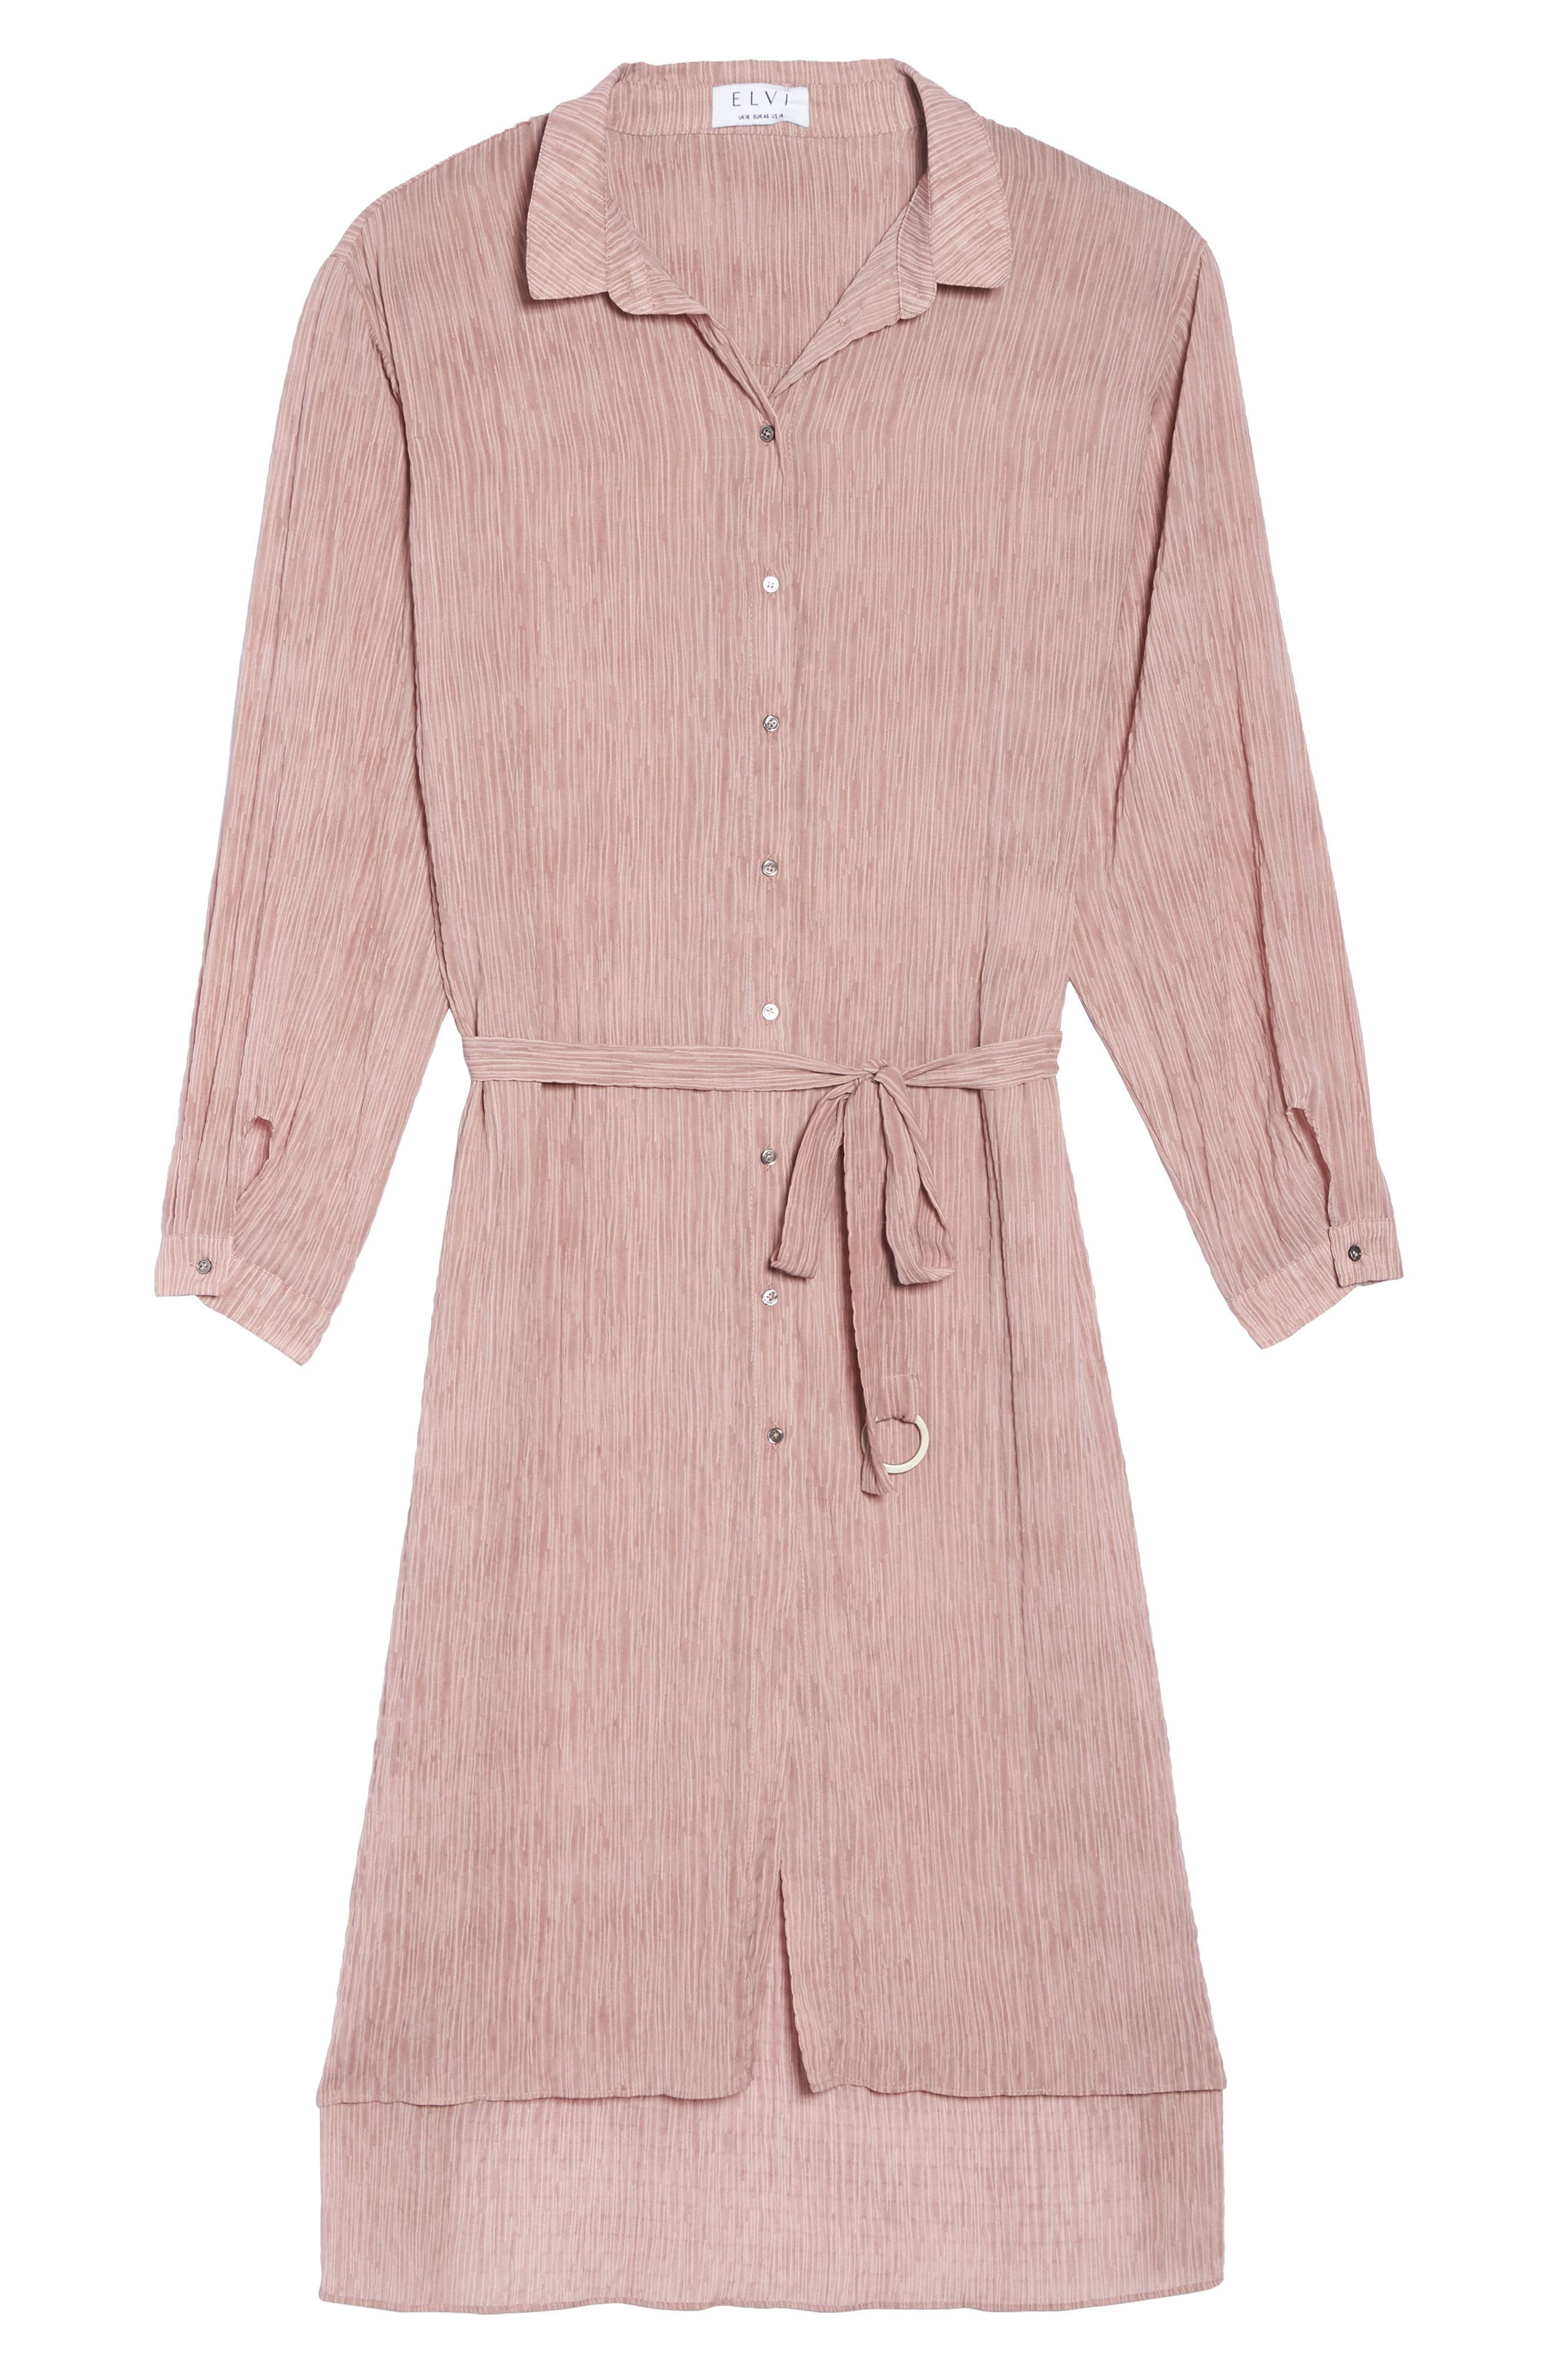 High/Low Shirtdress,                             Alternate thumbnail 6, color,                             Pink